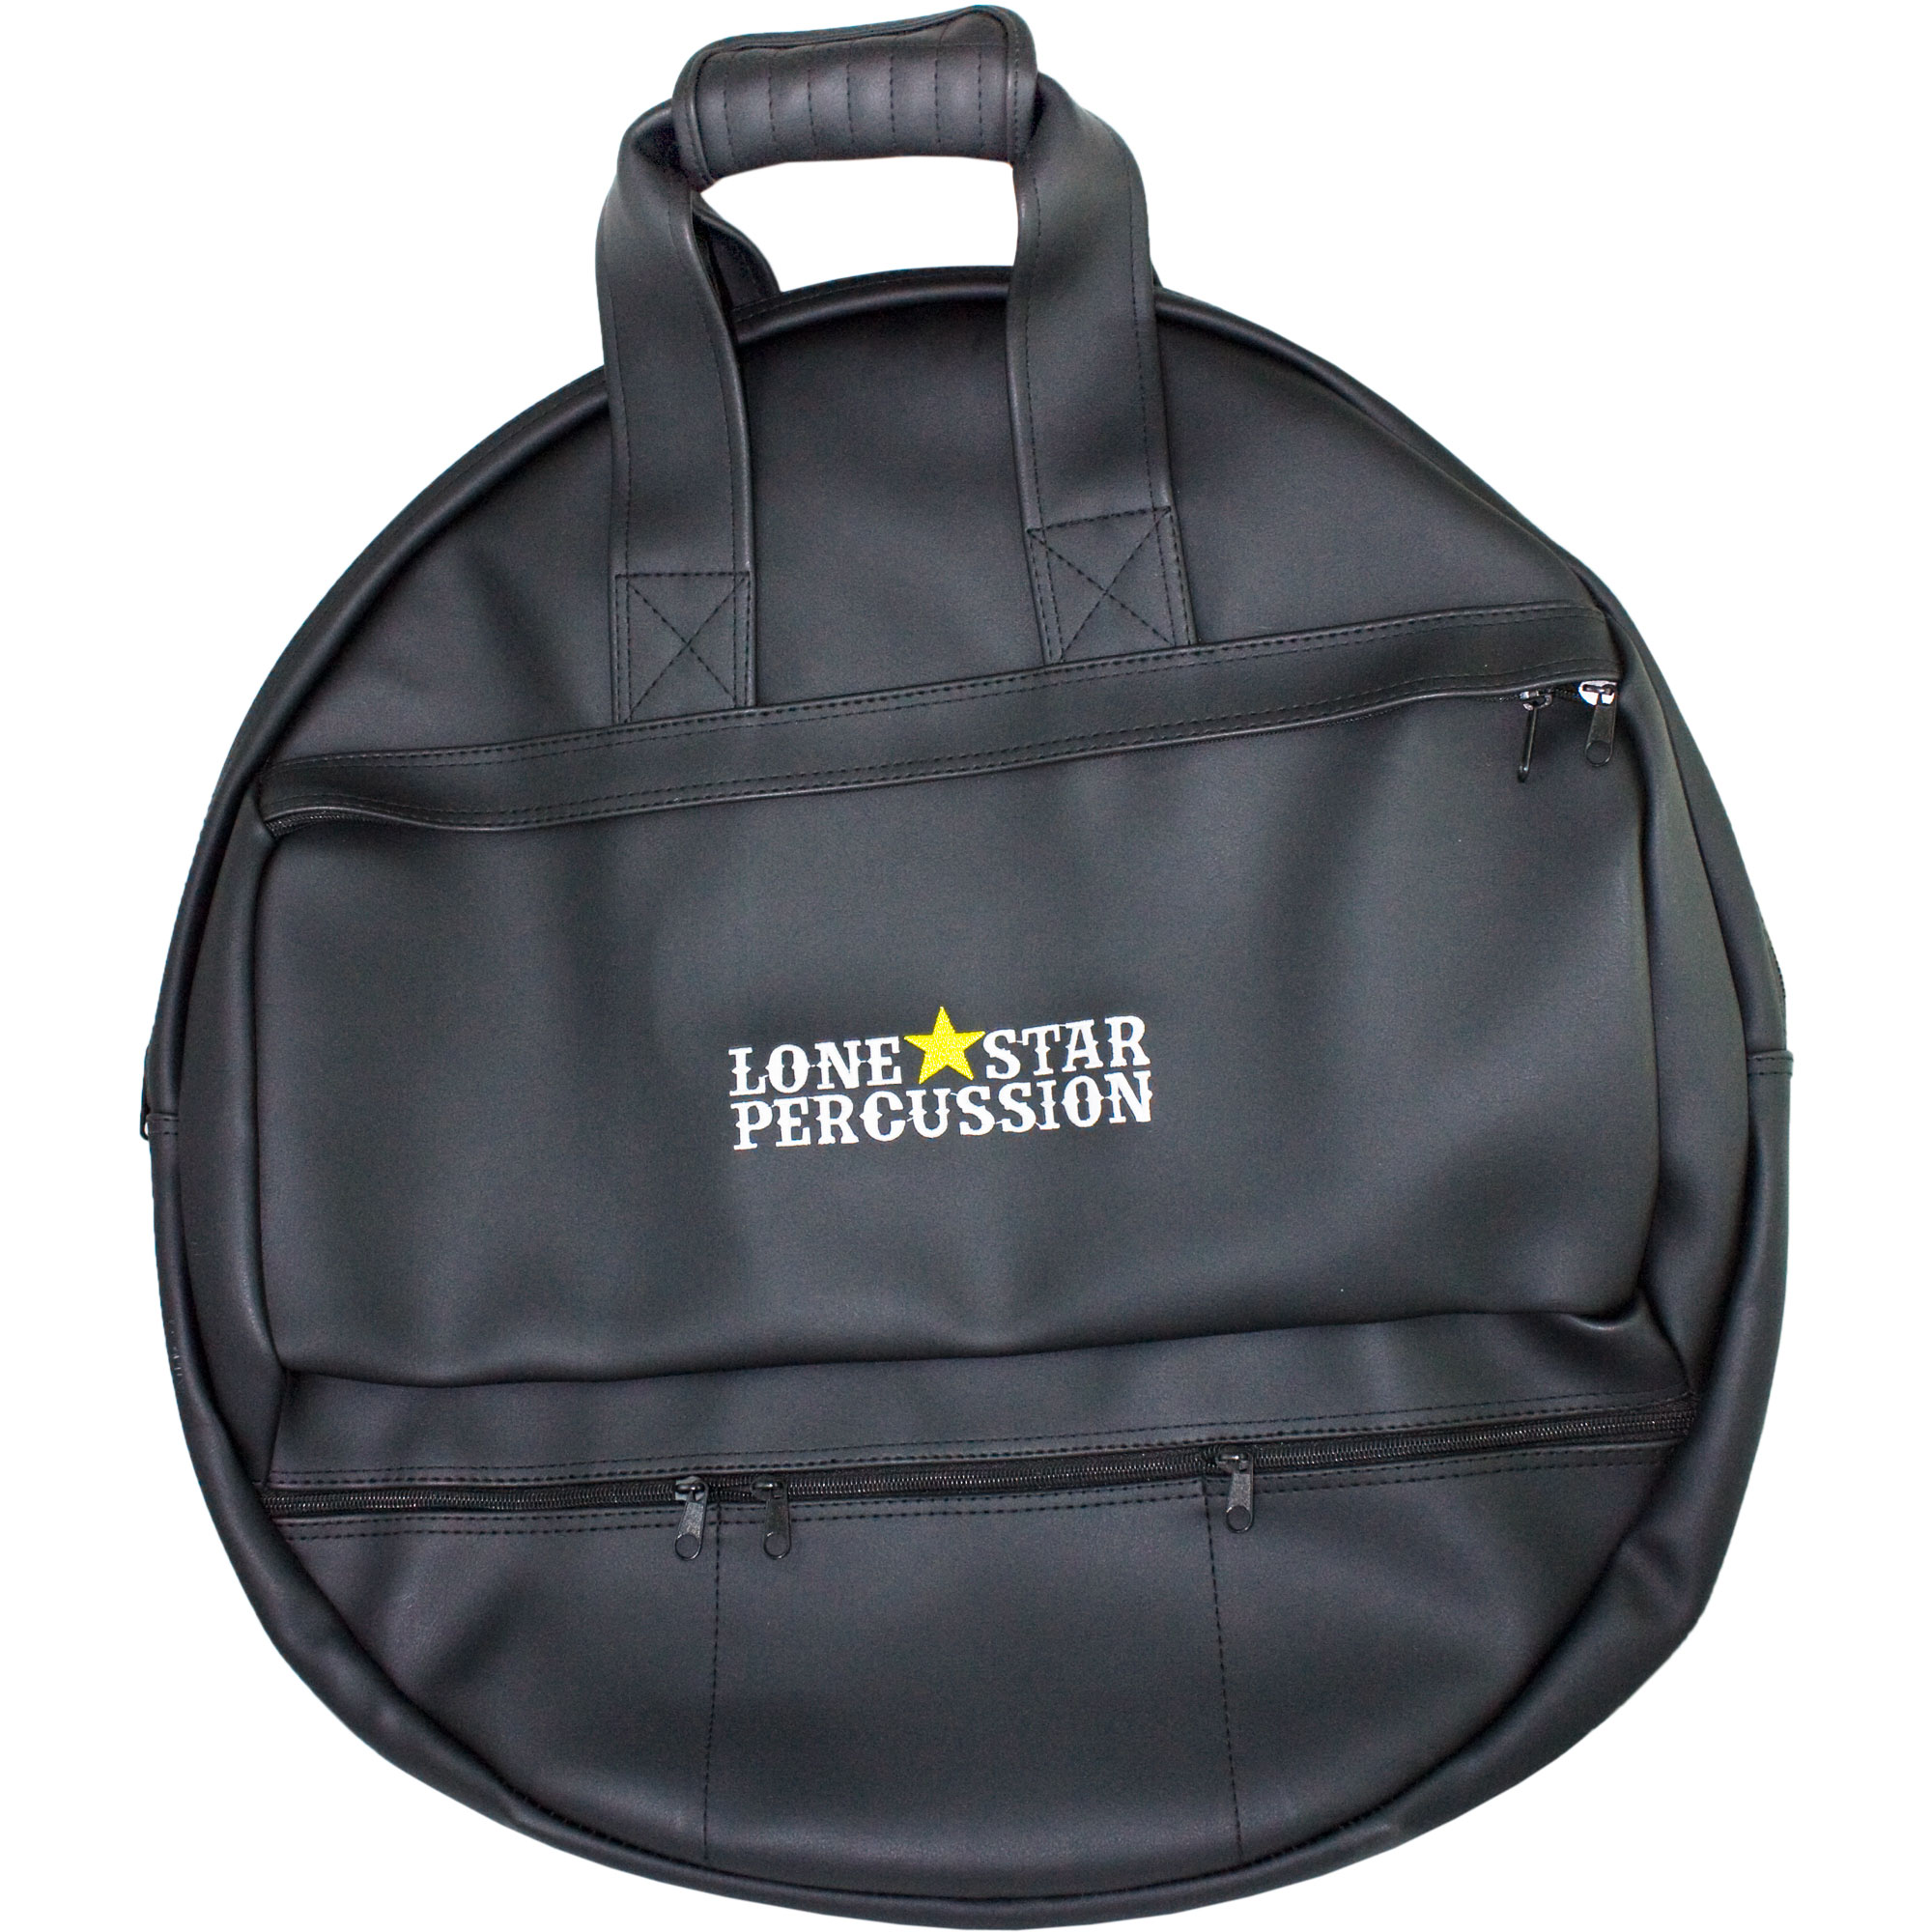 "Lone Star Percussion 22"" Premium Cymbal Bag with Backpack Straps"